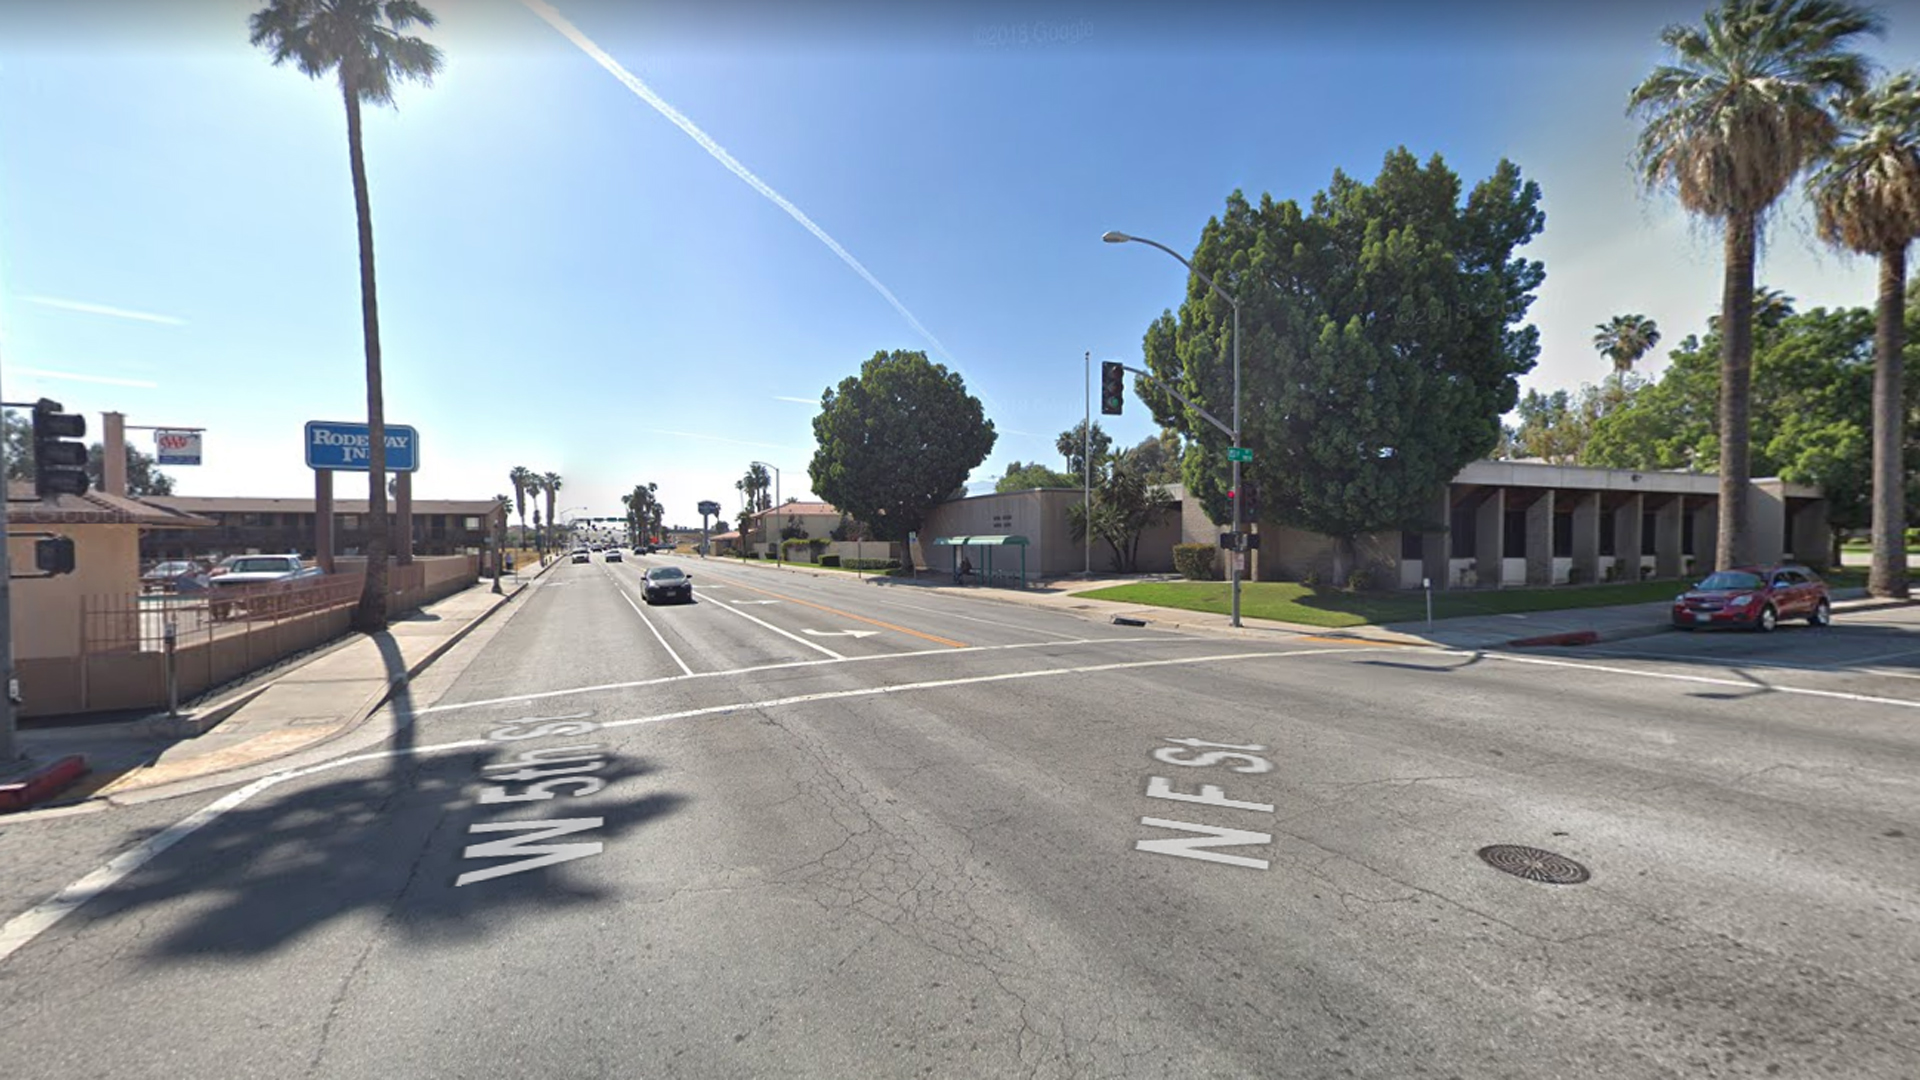 The intersection of 5th Street and F Street in San Bernardino, as seen in a Google Street View image in April of 2018.